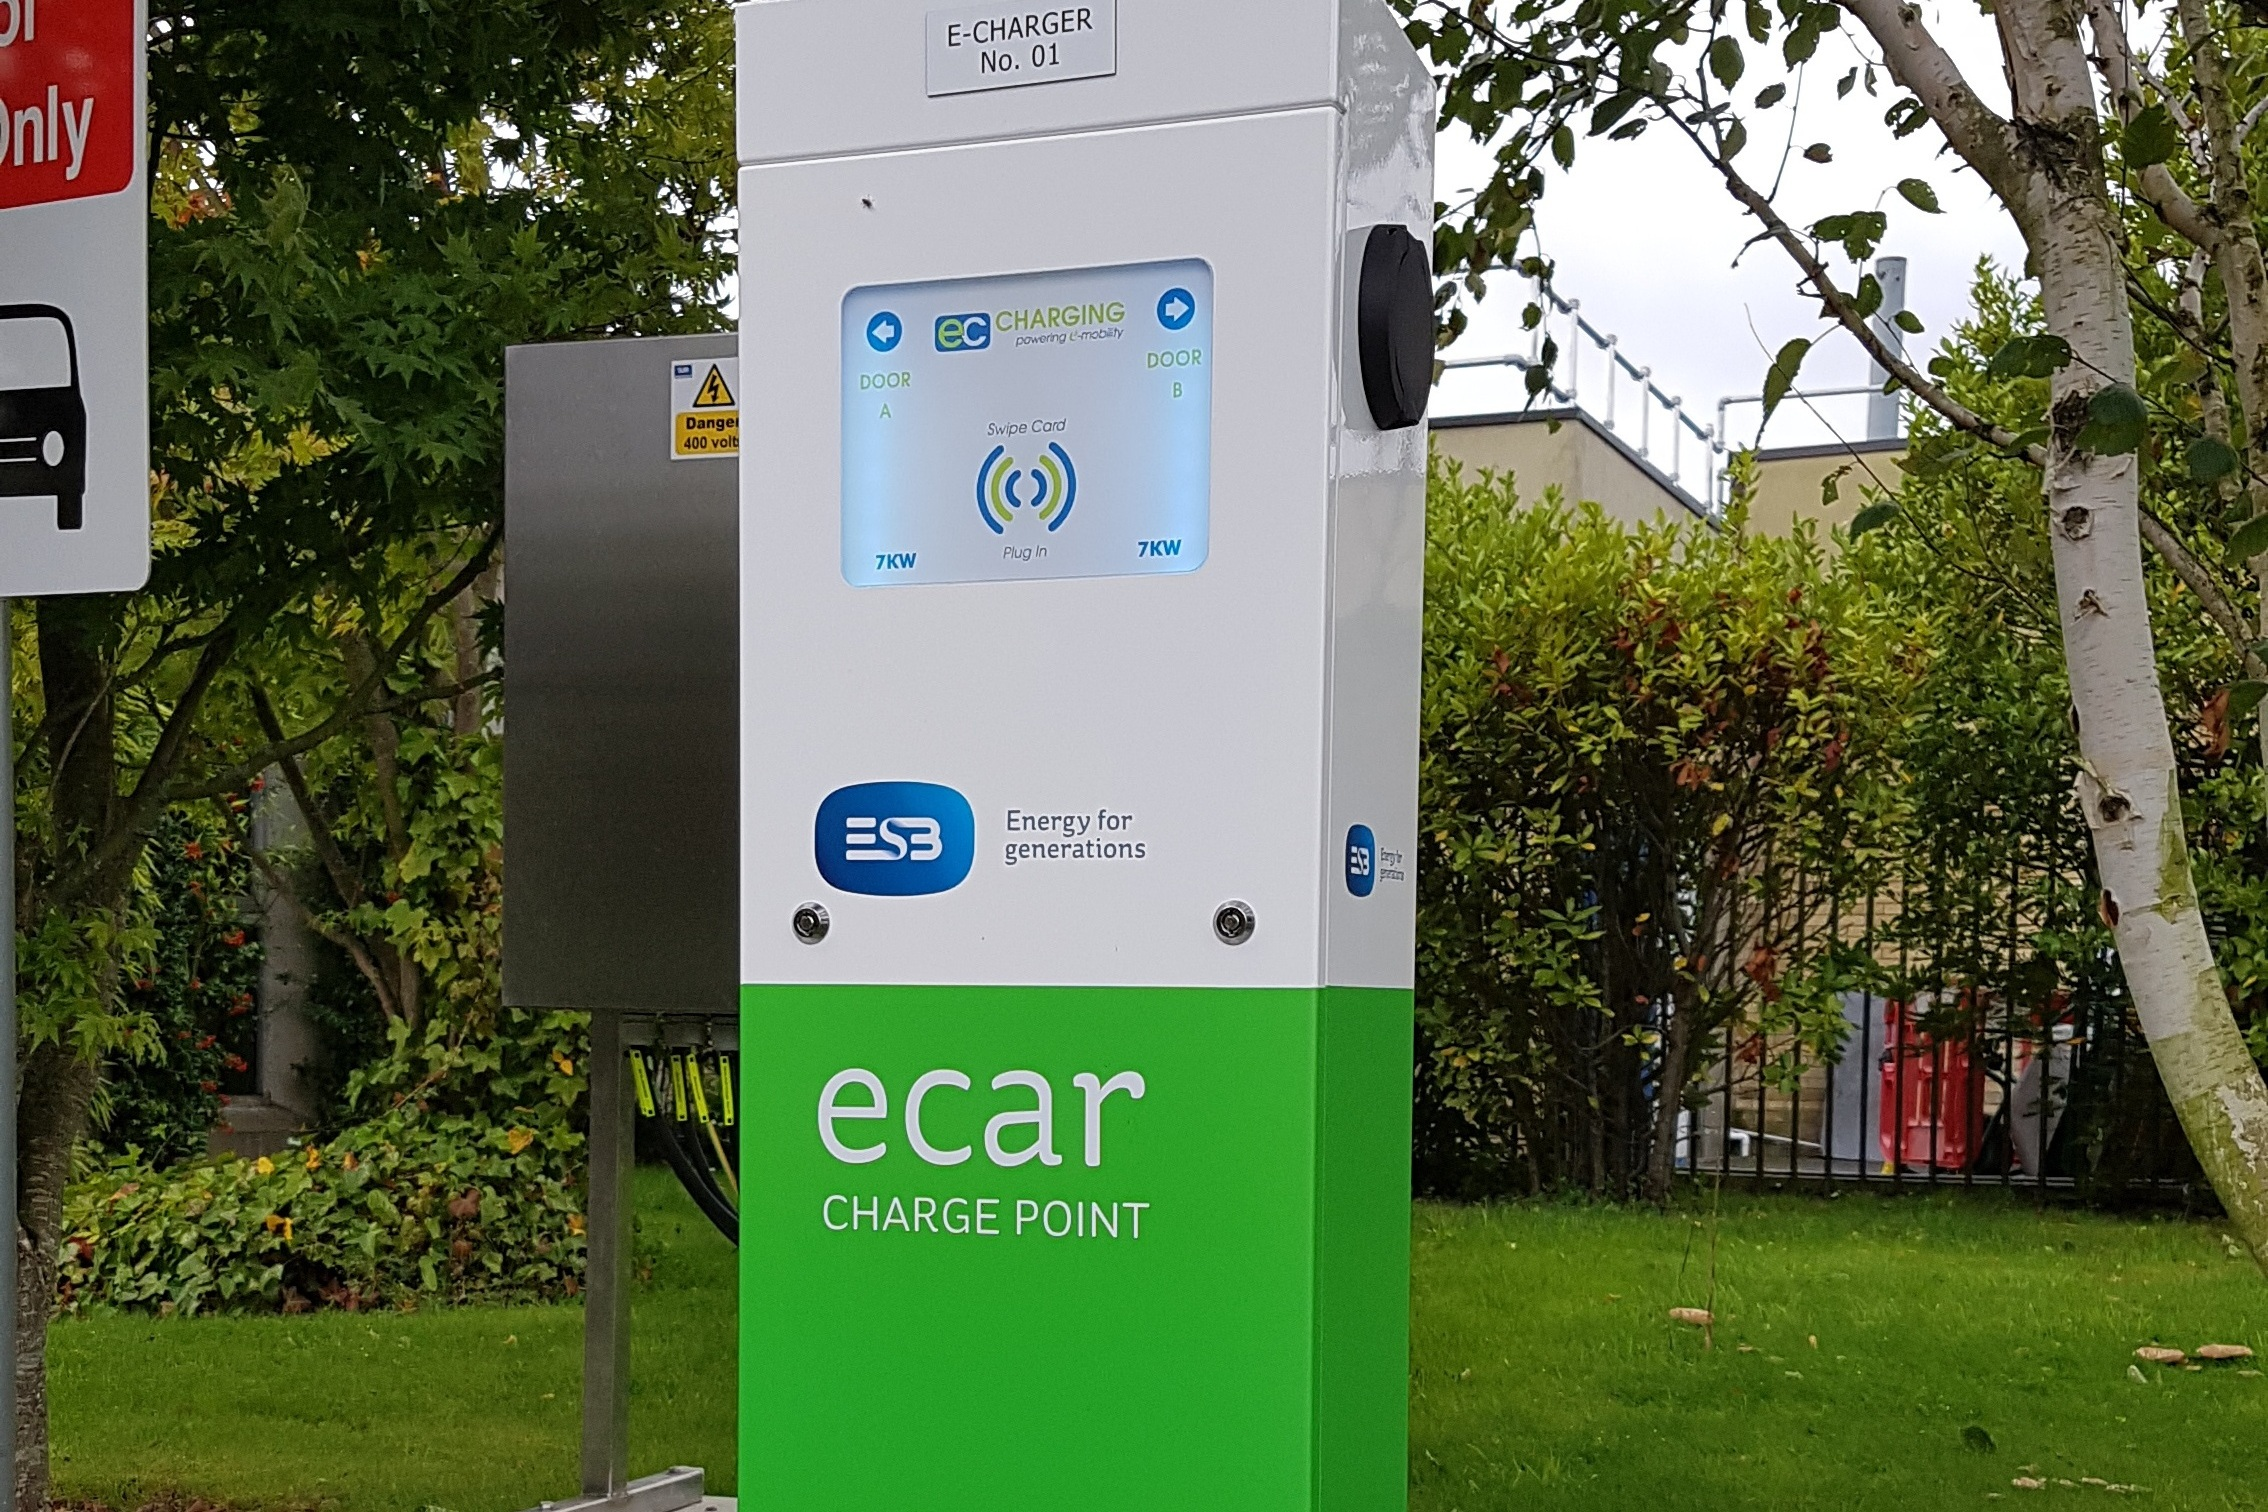 EC Charging & ESB ecars - EC Charging & ESB ecars have enjoyed a long and productive relationship since its foundation in 2010 with the roll out of a national infrastructure of electric car charging stations. This groundbreaking project earned EC Charging an international reputation for innovation, quality and reliability.